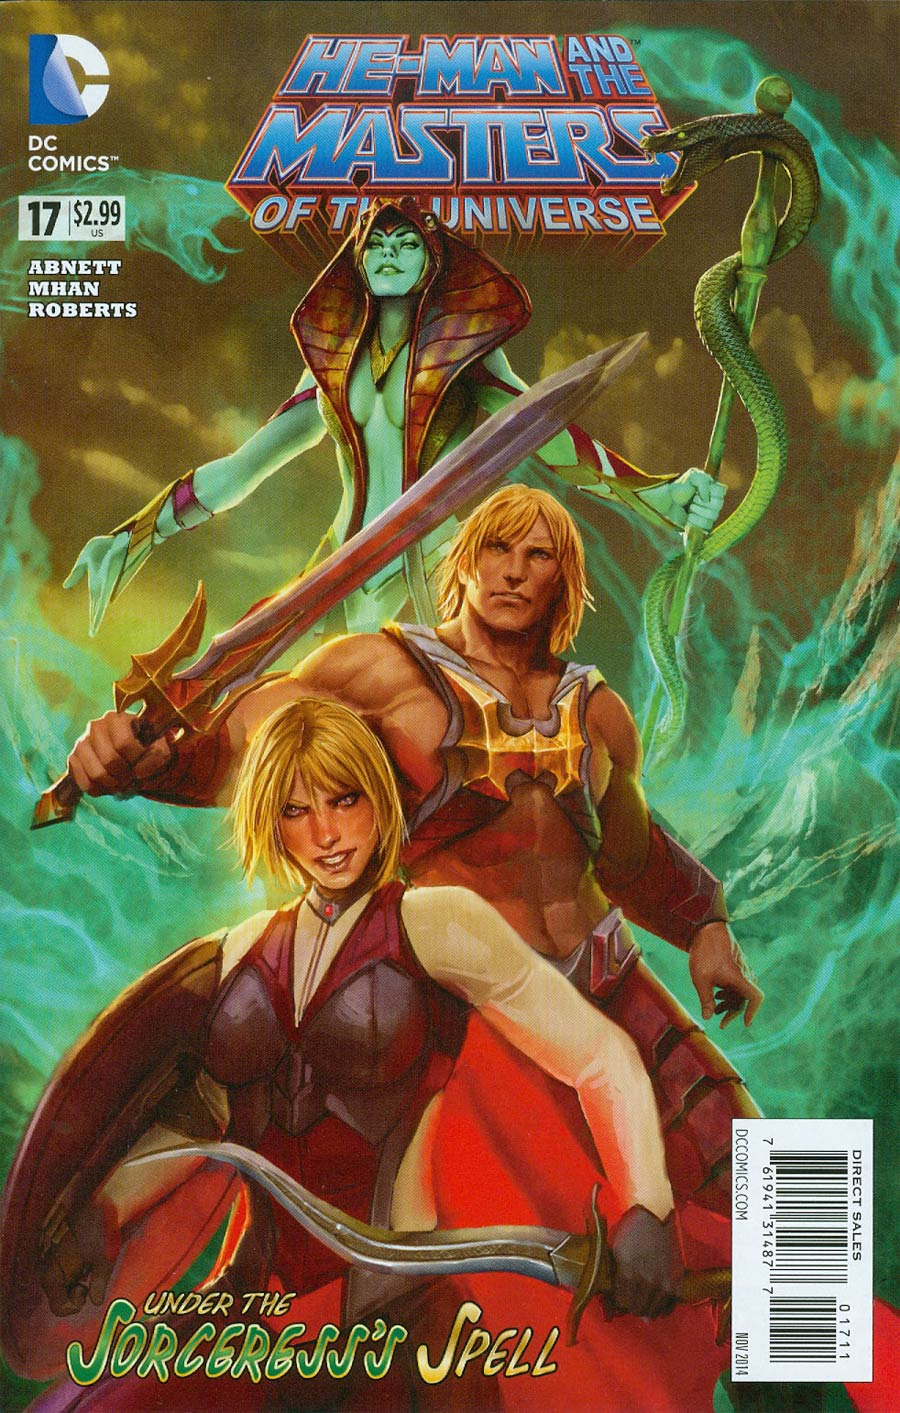 He-Man And The Masters Of The Universe Vol 2 #17